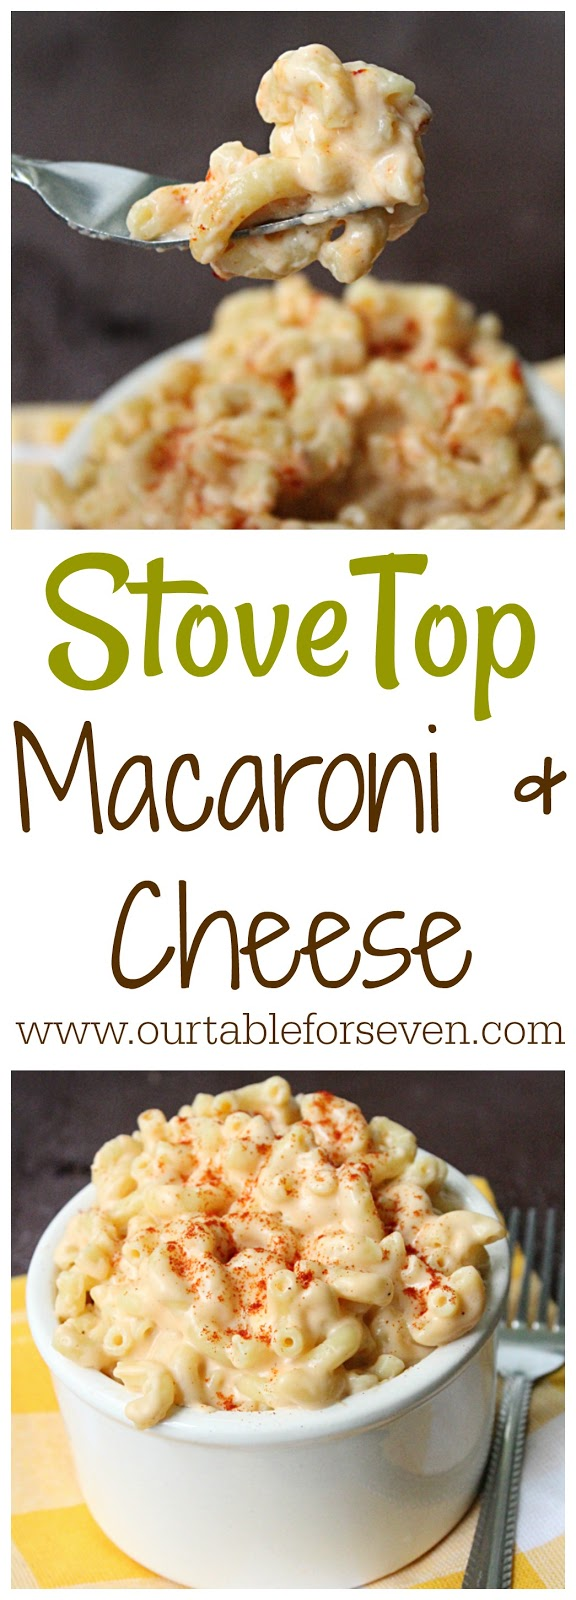 Stove Top Macaroni and Cheese from Table for Seven: Tired of the boxed version? Give this classic stove top version a try!